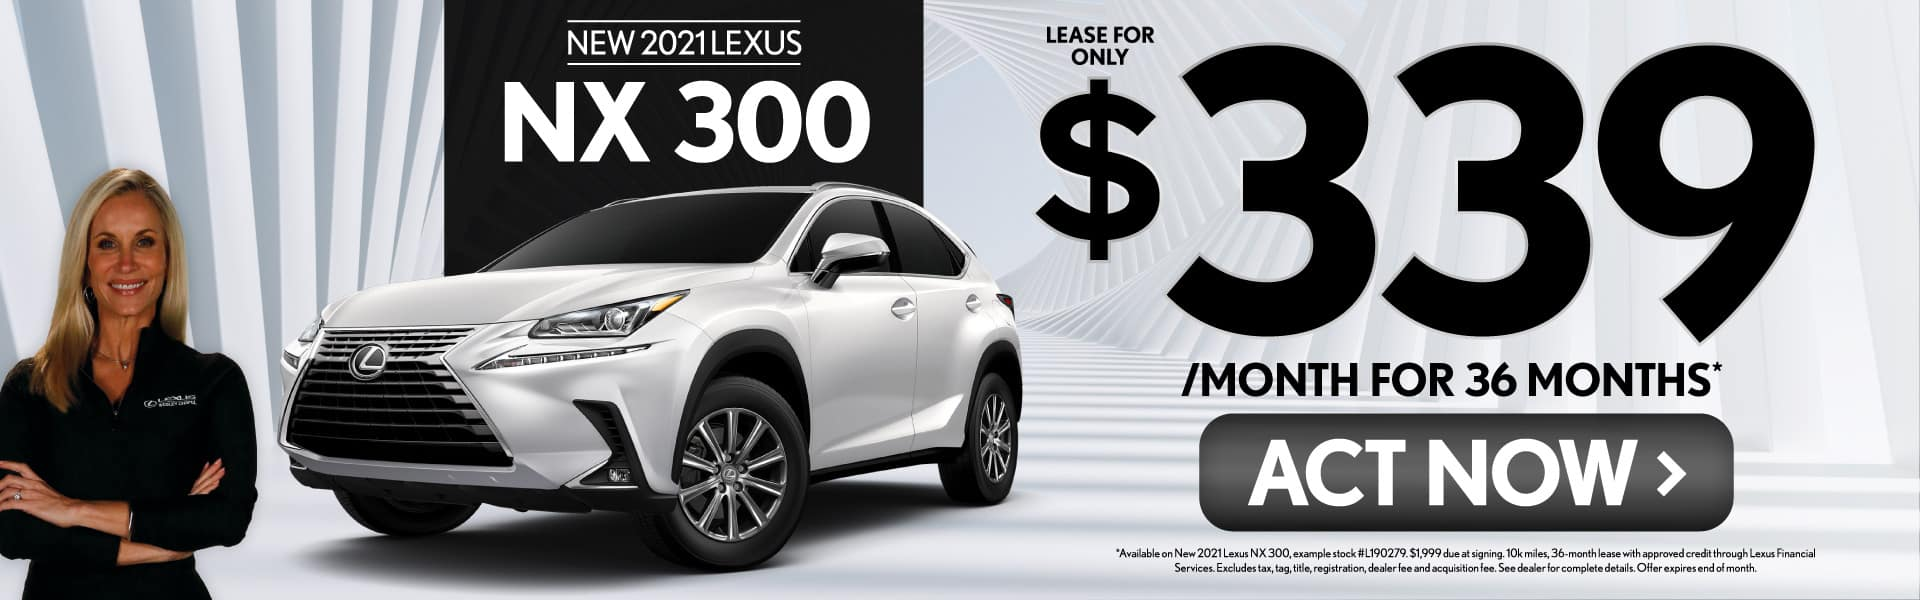 New 2021 Lexus NX 300 only $339/mo - ACT NOW